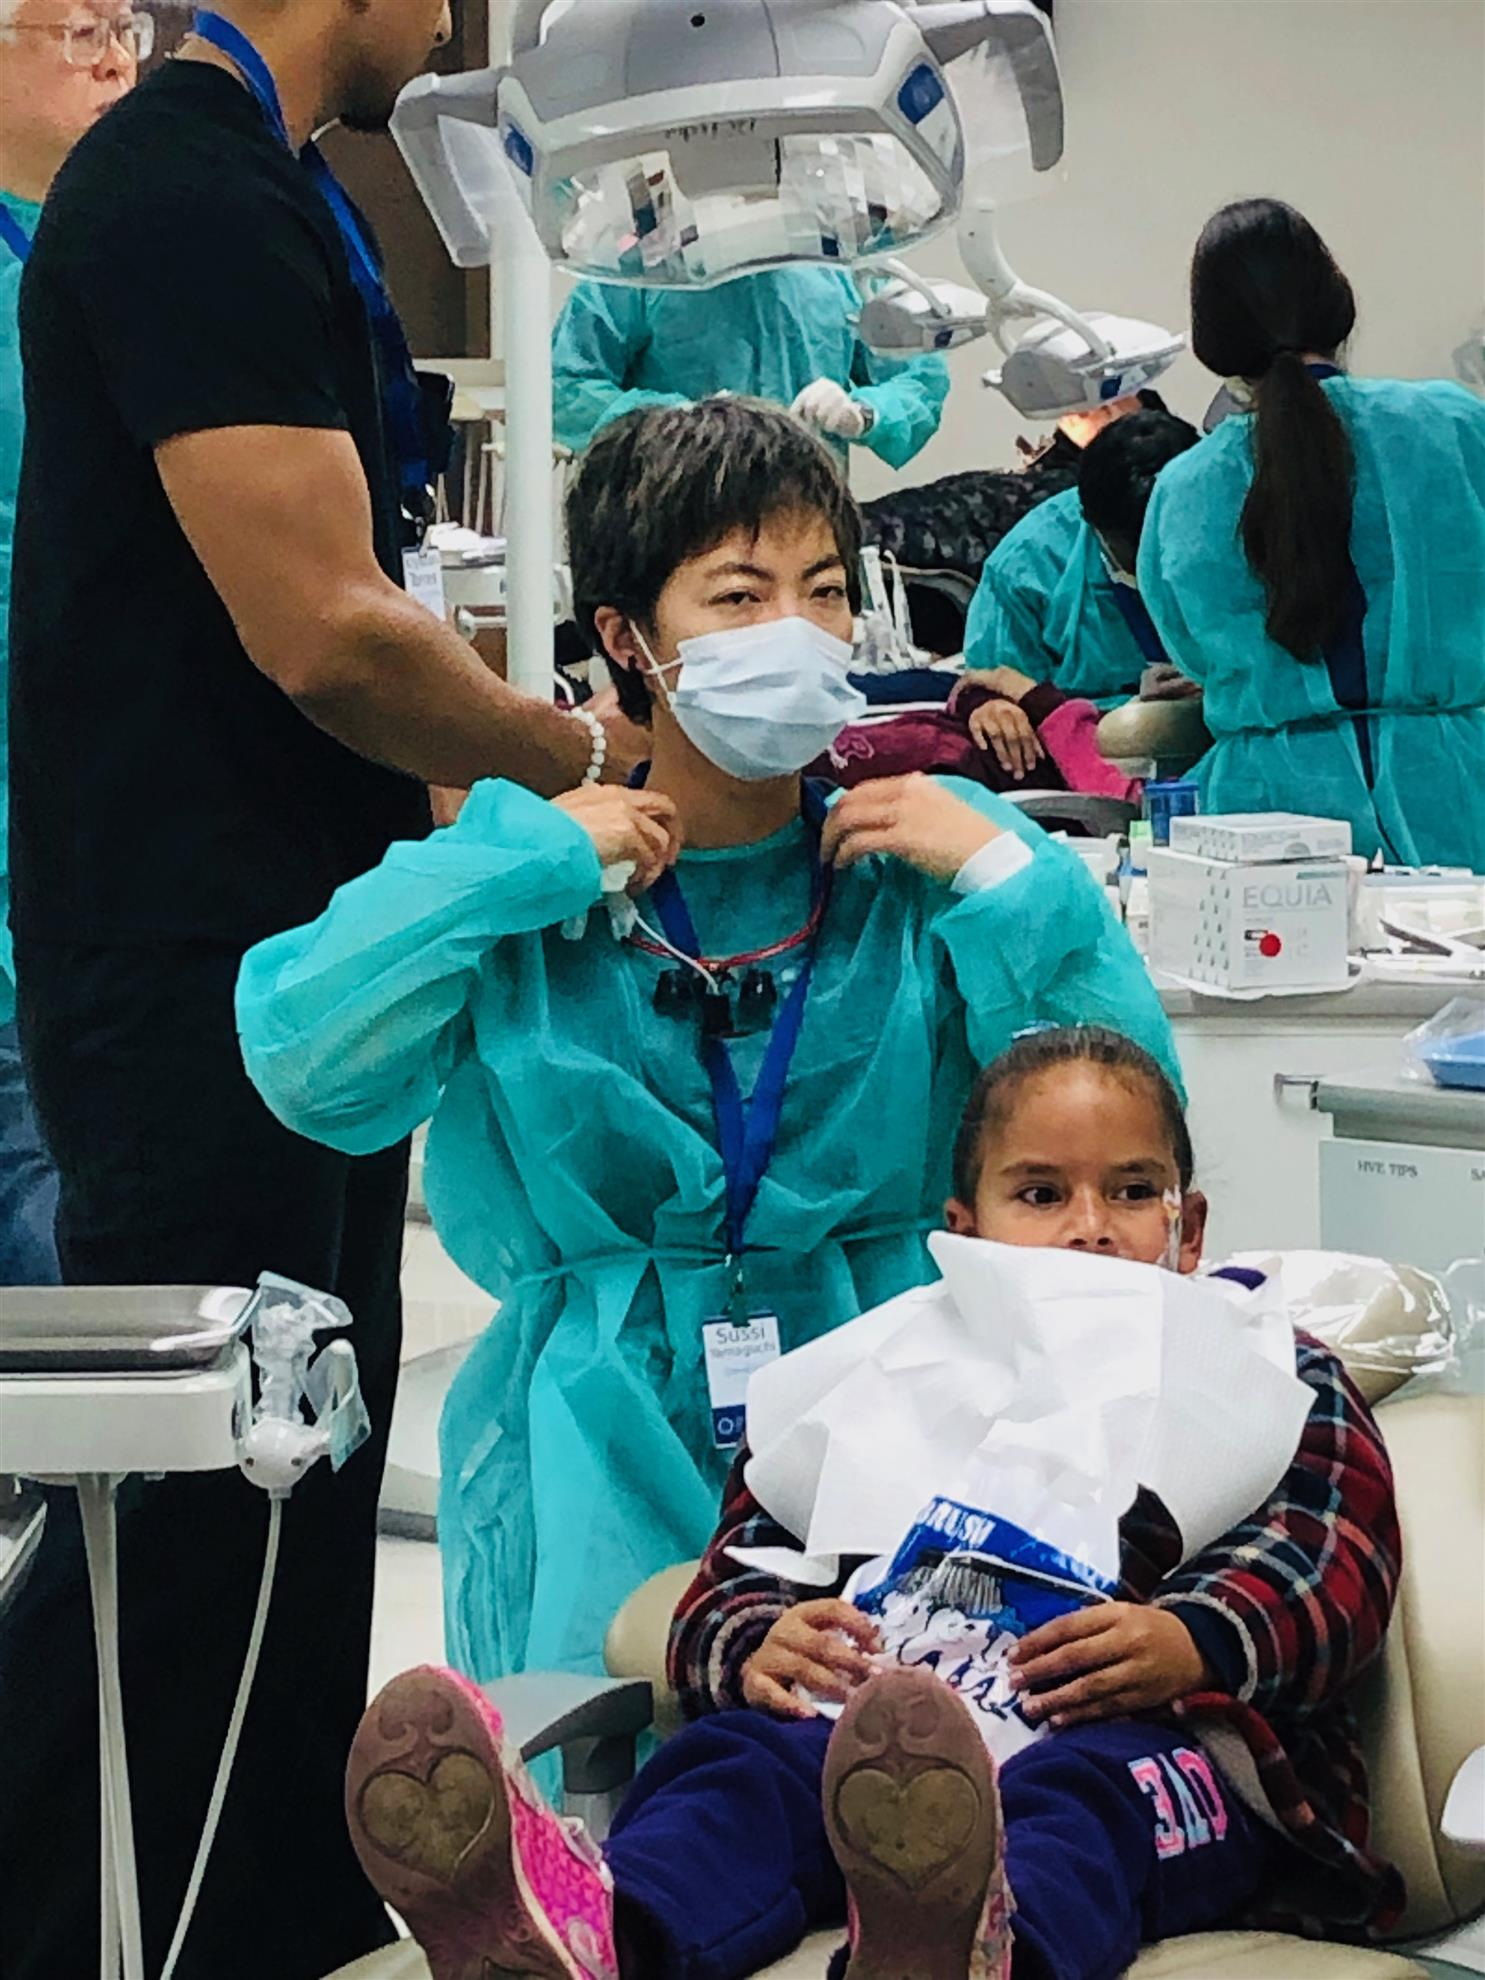 Volunteer DDS from Southern California treat a young patient